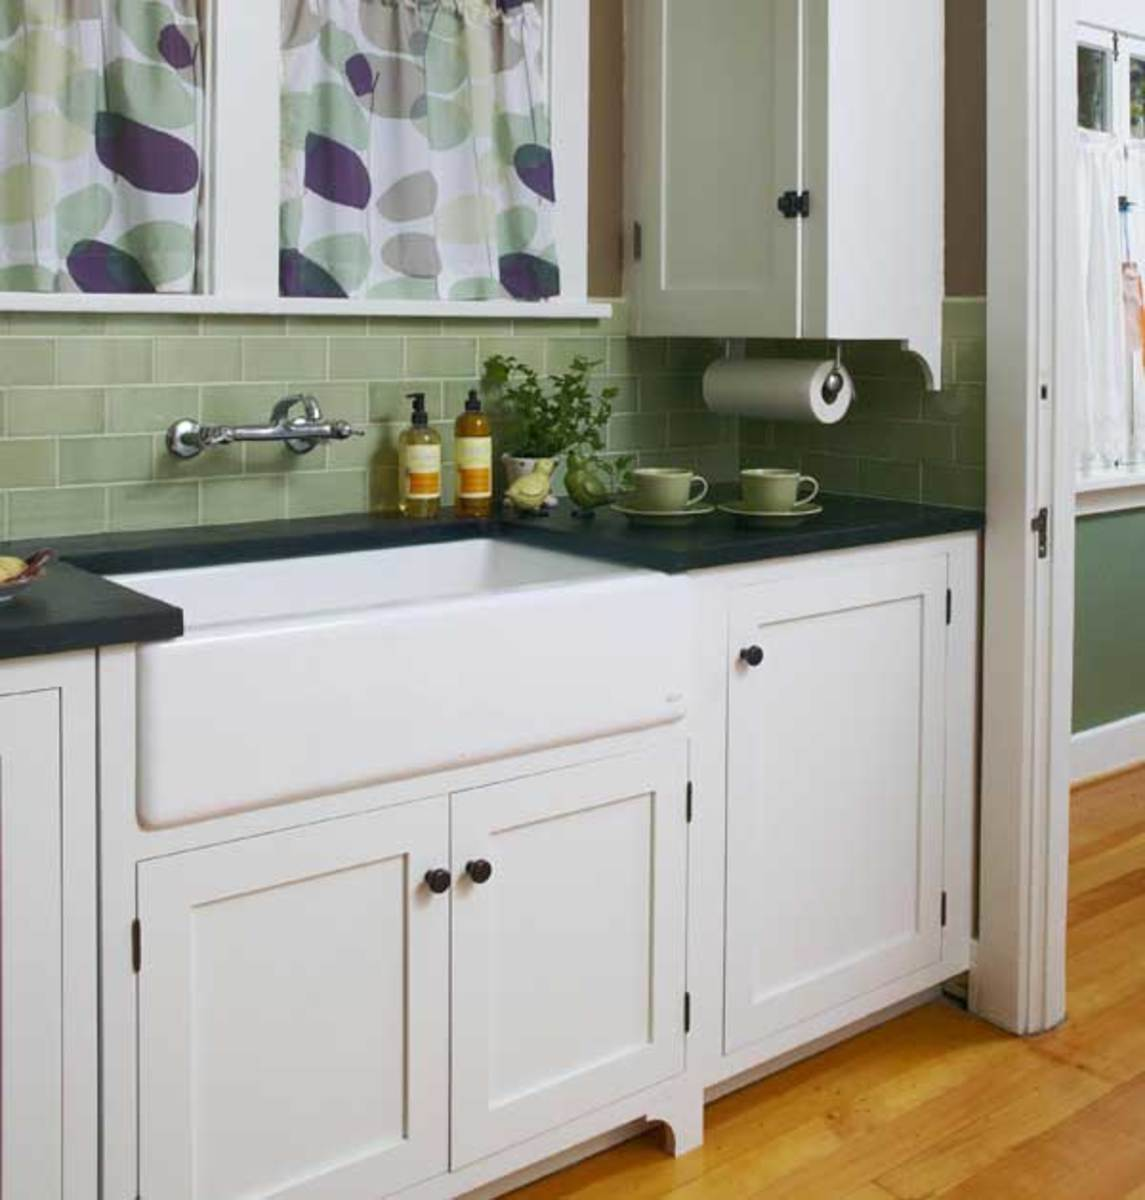 Apron Sink With Backsplash : The big, apron-front sink is an attractive stand-in for old-fashioned ...